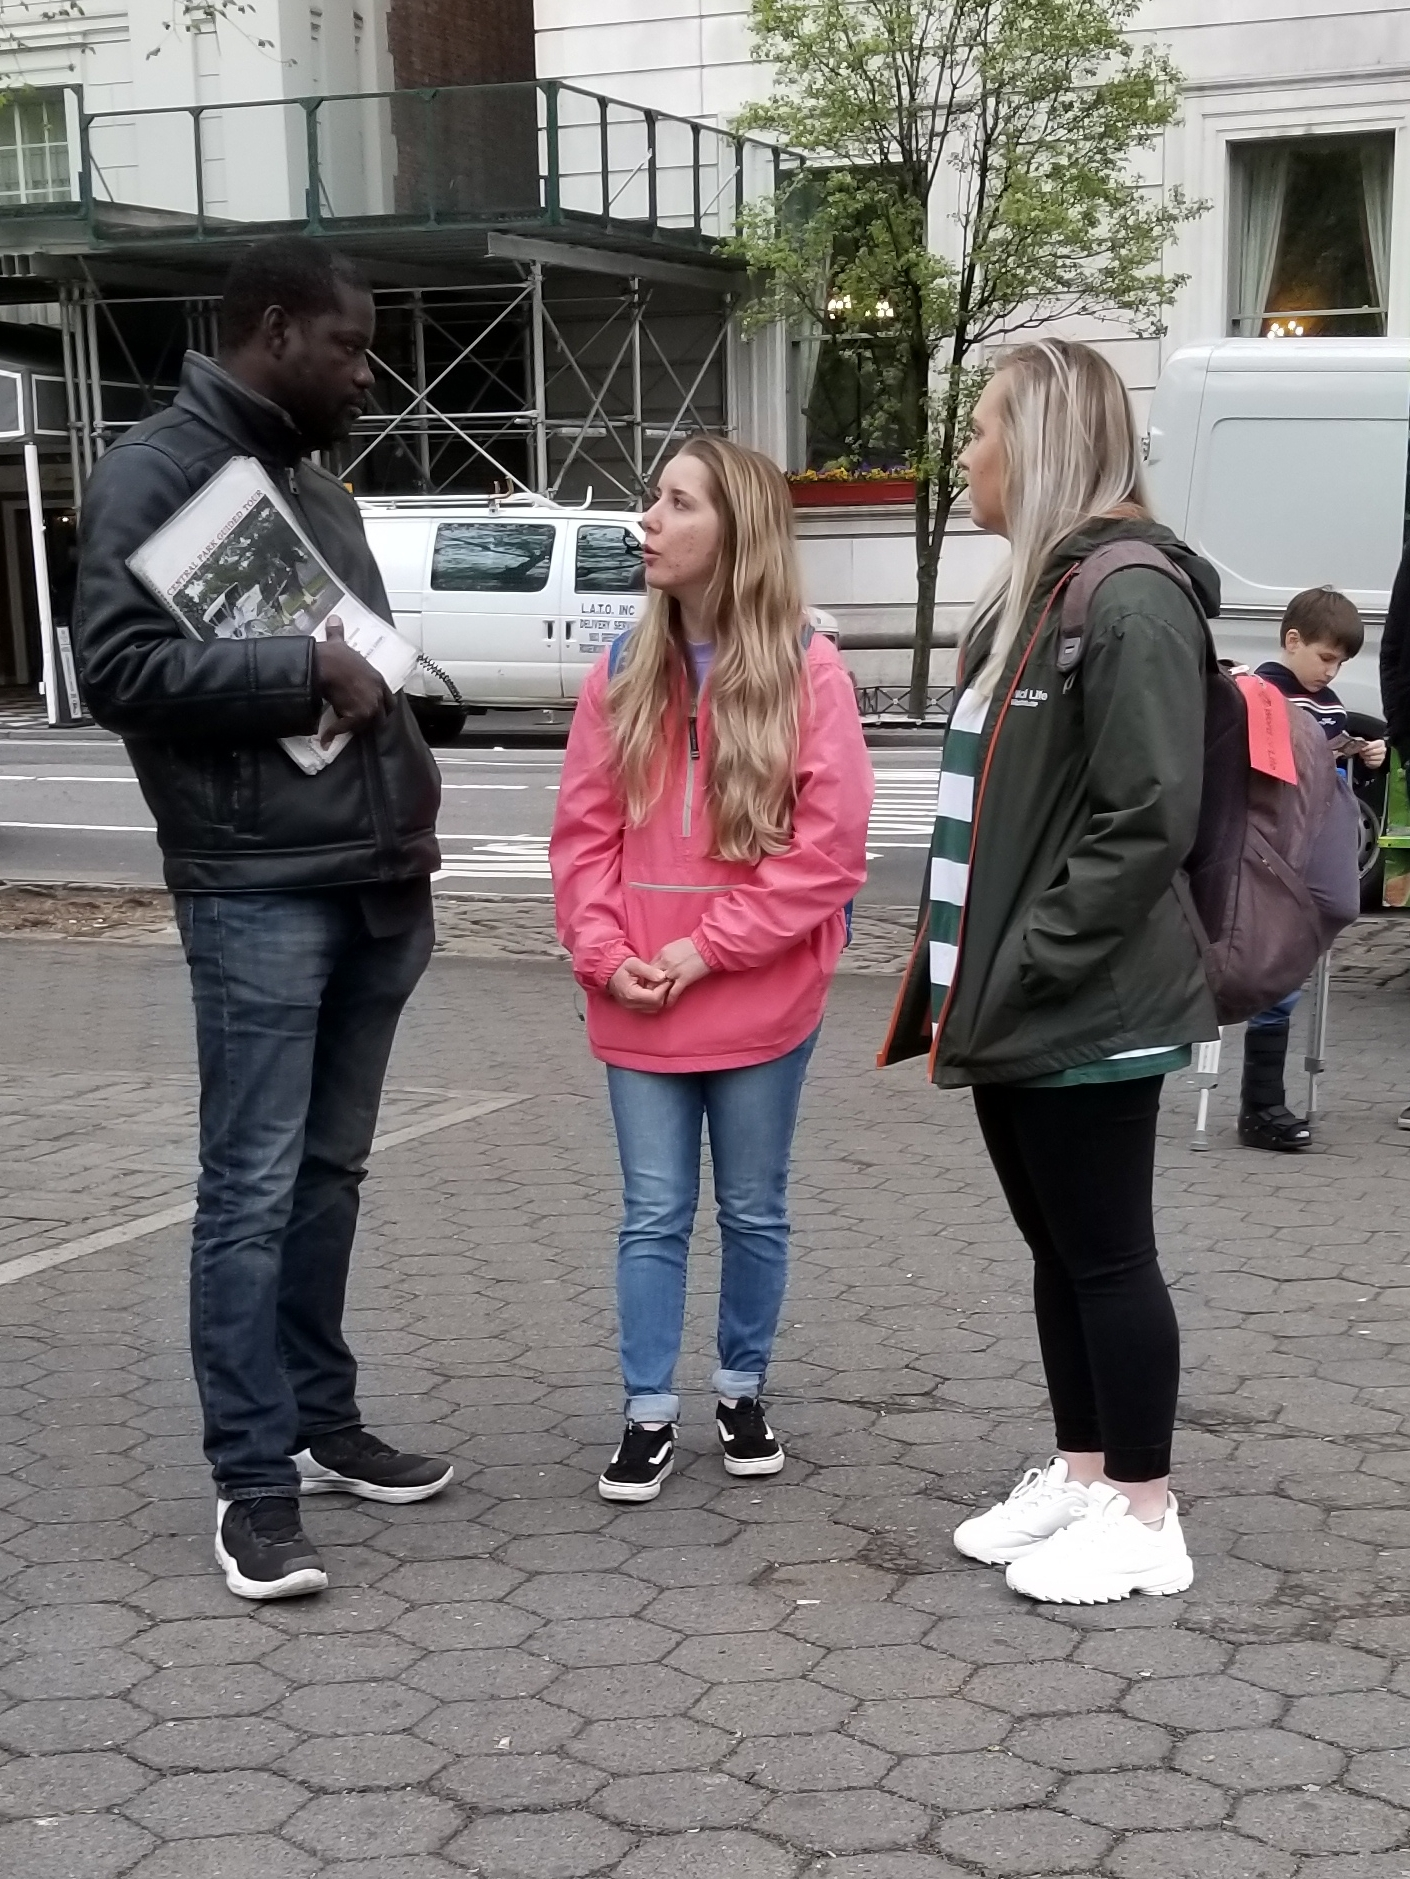 Natalie and RJ spoke to a man selling newspapers on the street. Bold as 2 lionesses!